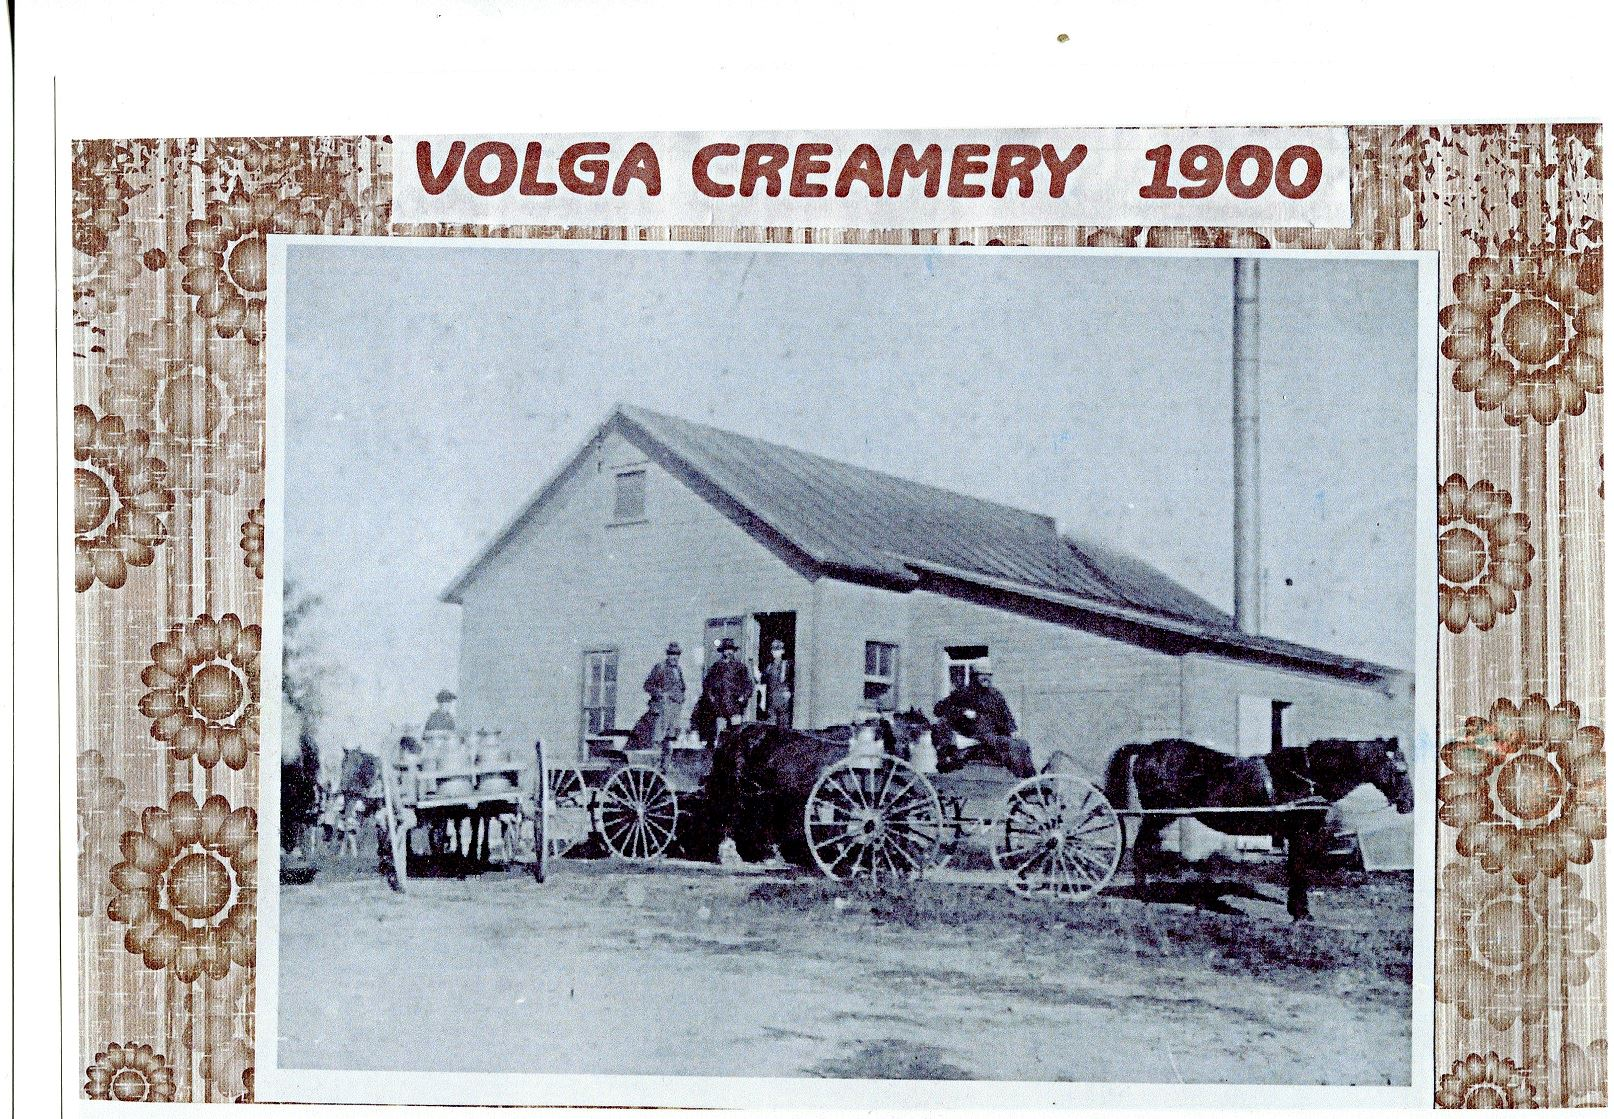 Business - Volga Creamery 1900